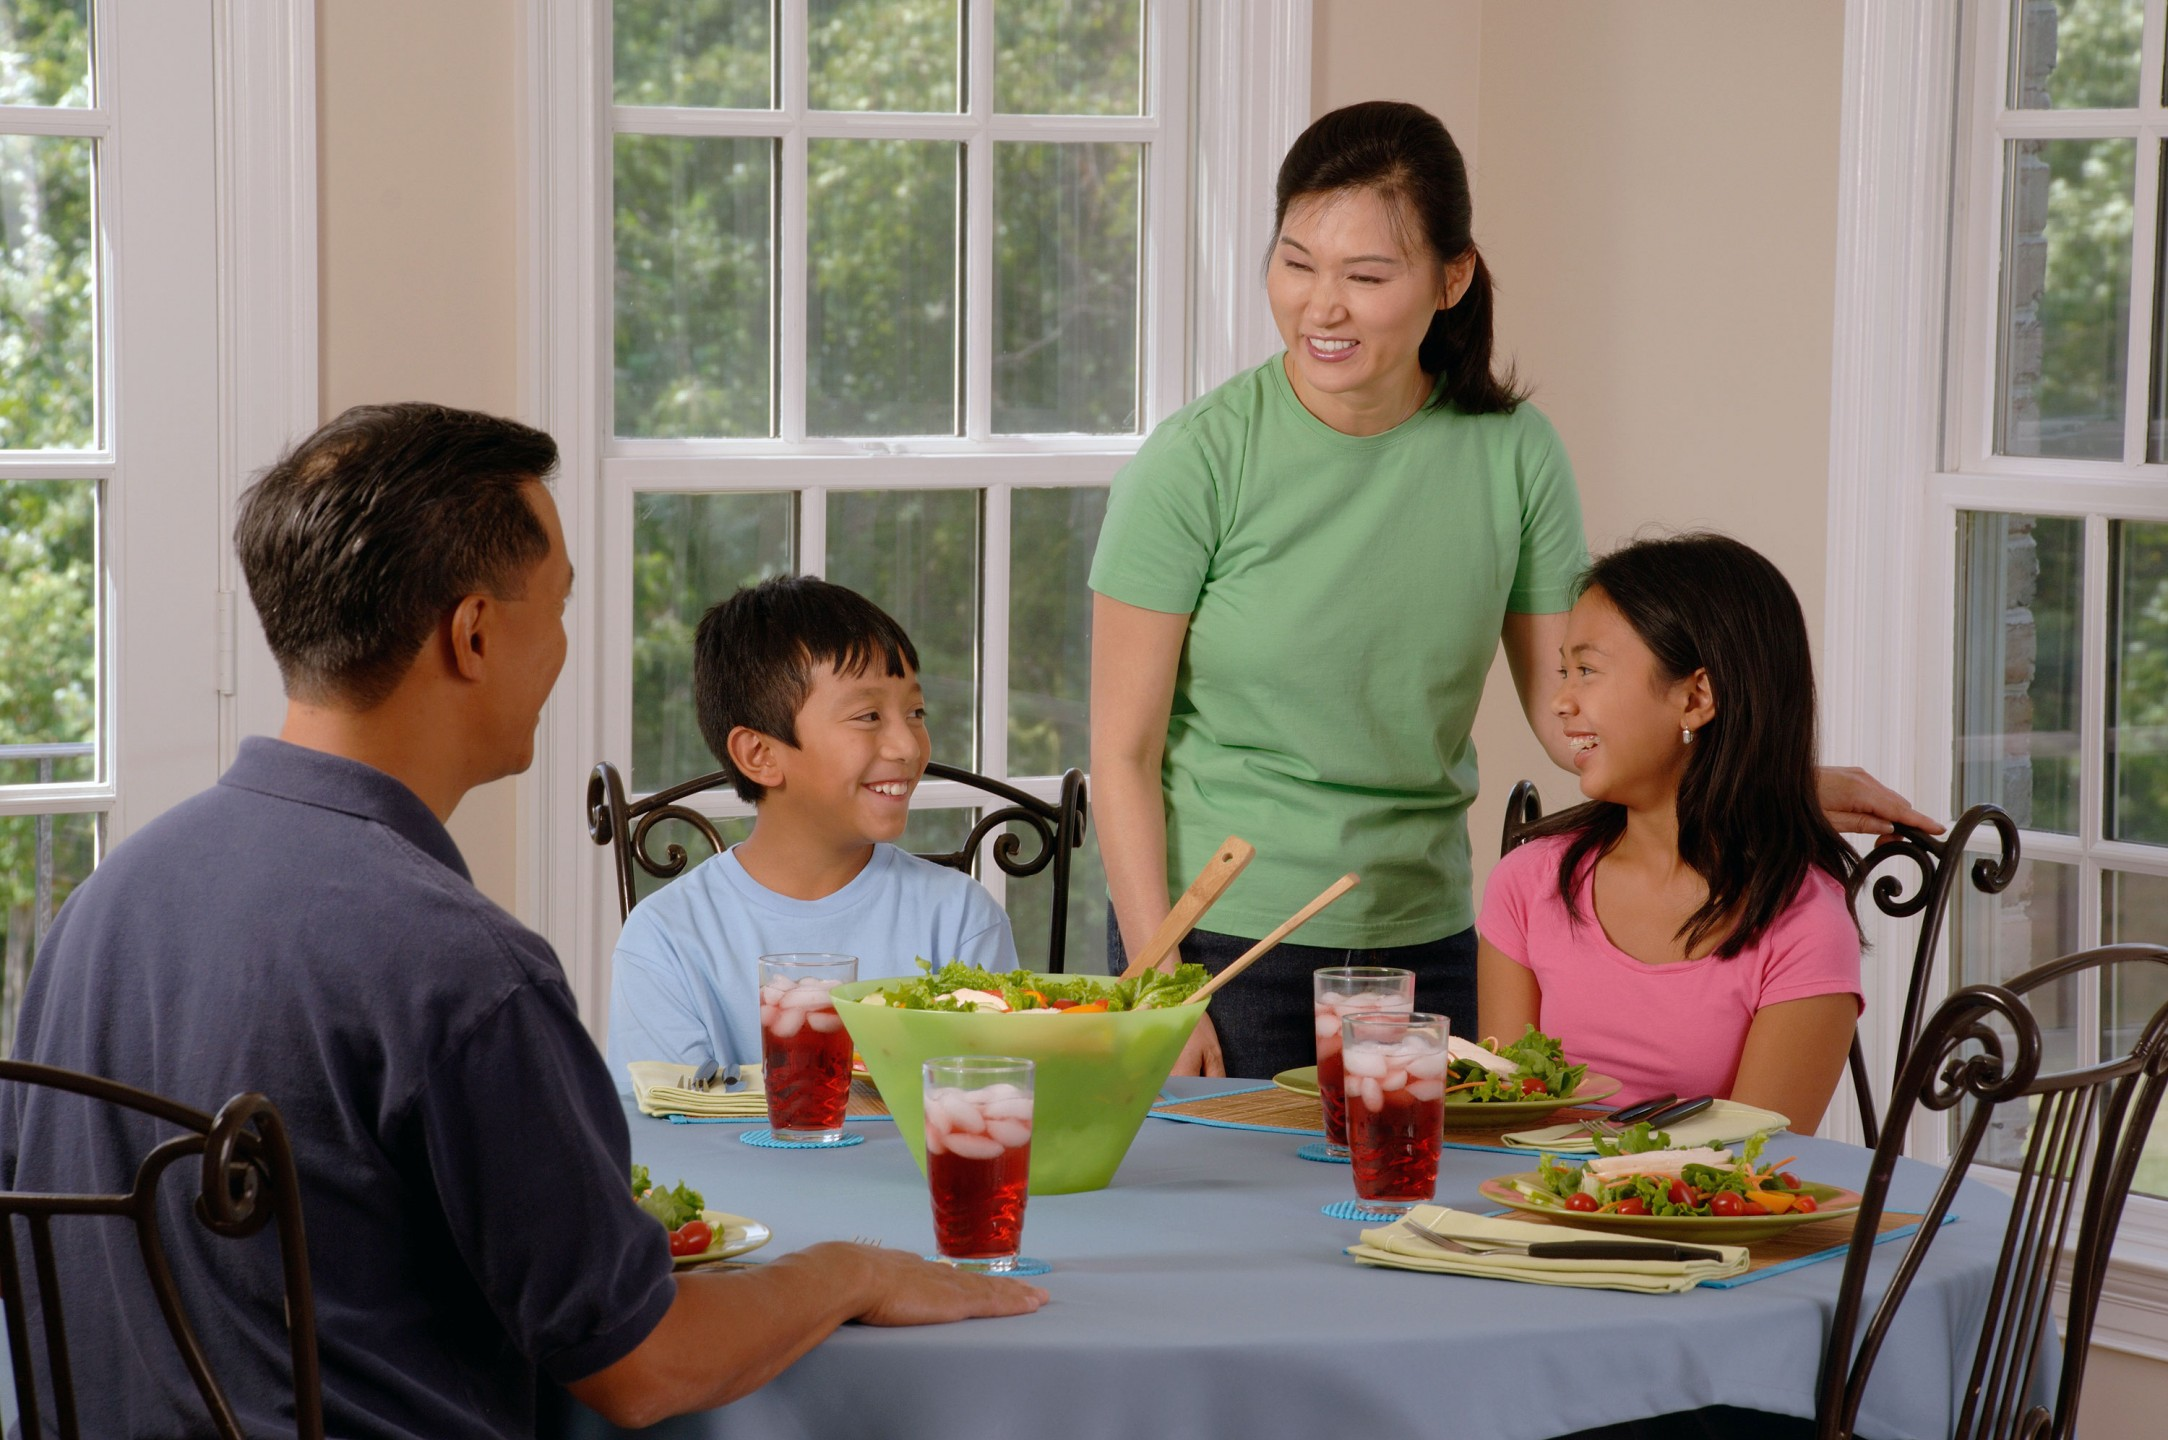 family_eating_at_a_table_1.jpg